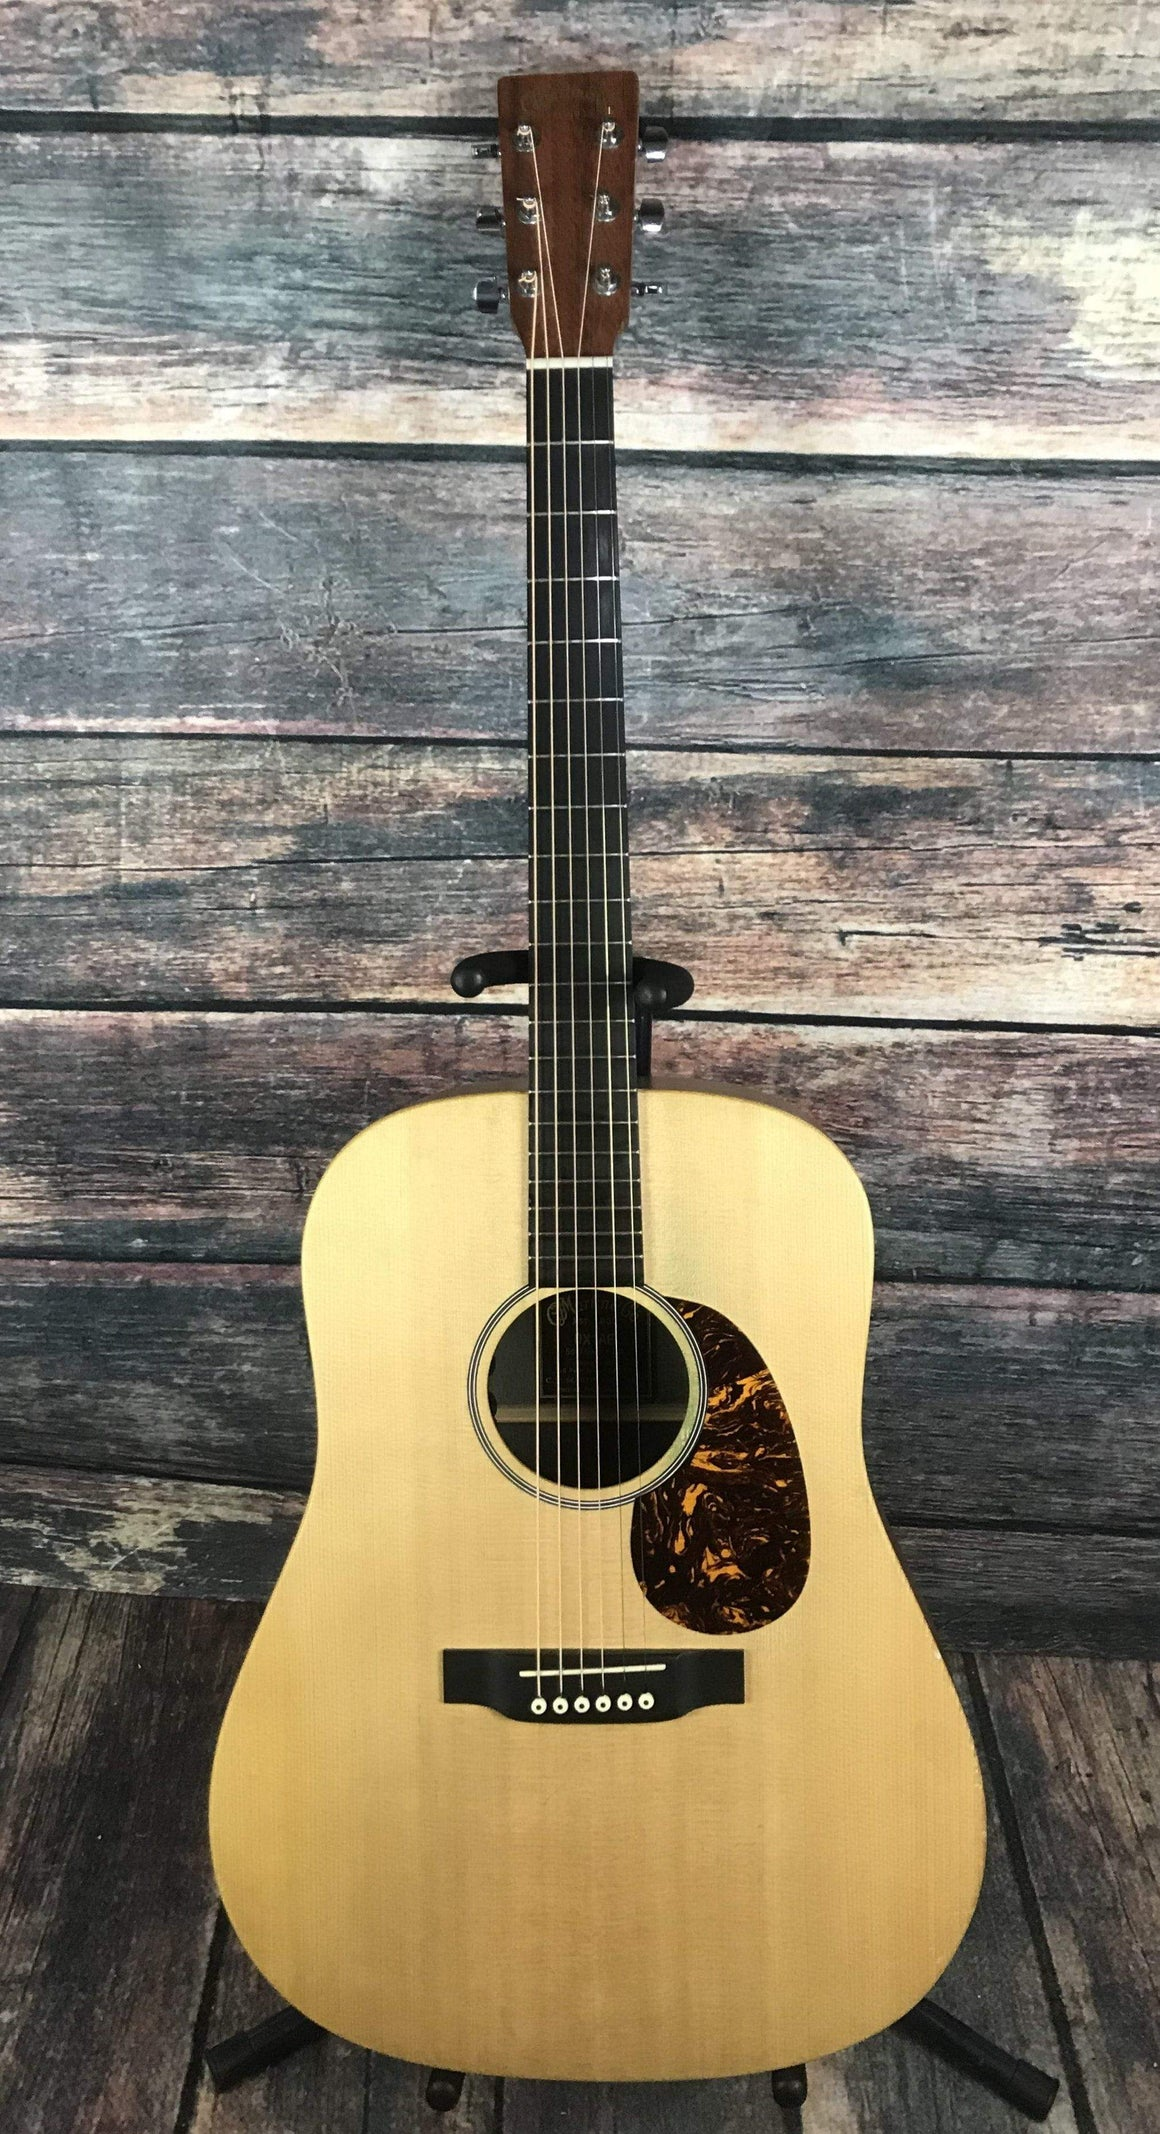 C.F. Martin Guitars Acoustic Guitar Used Martin DX1AE X Series Dreadnought Acoustic Electric Guitar with Hard Shell Case